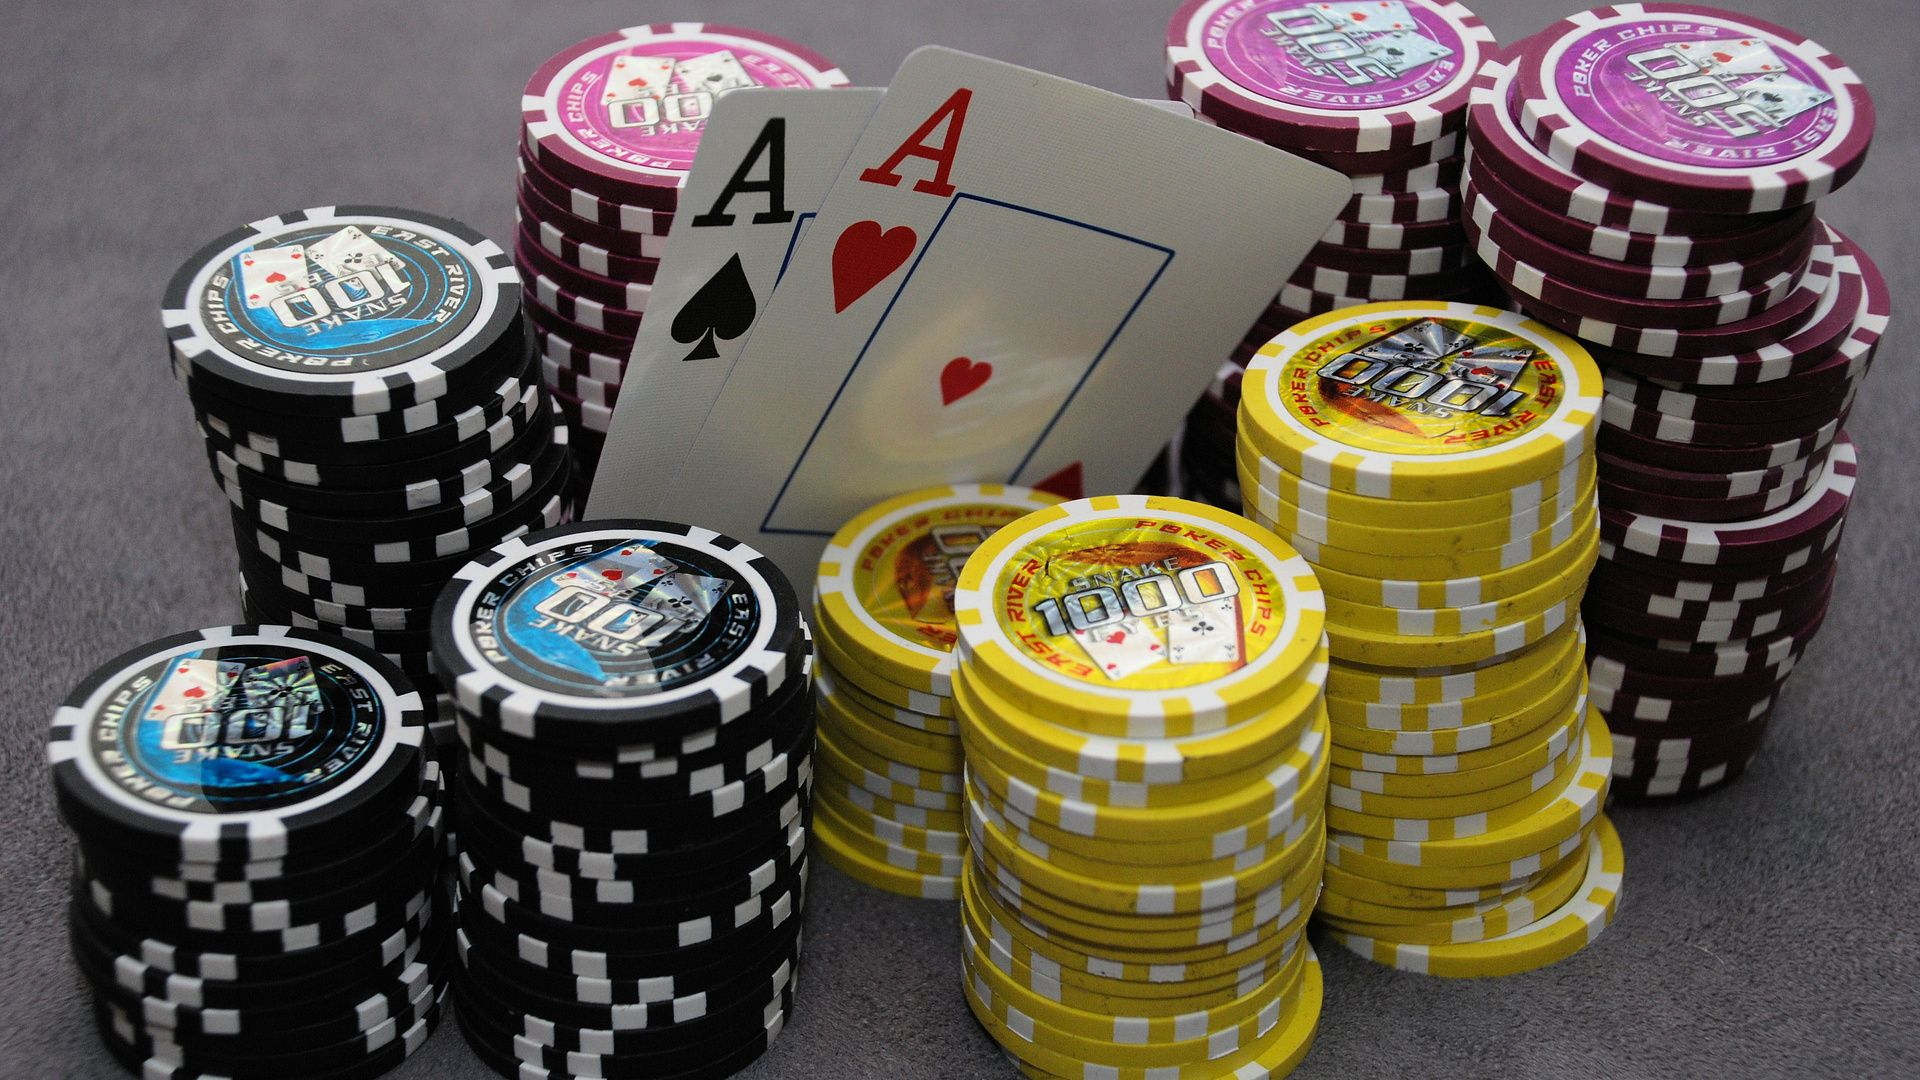 Application Iphone Poker Entre Amis